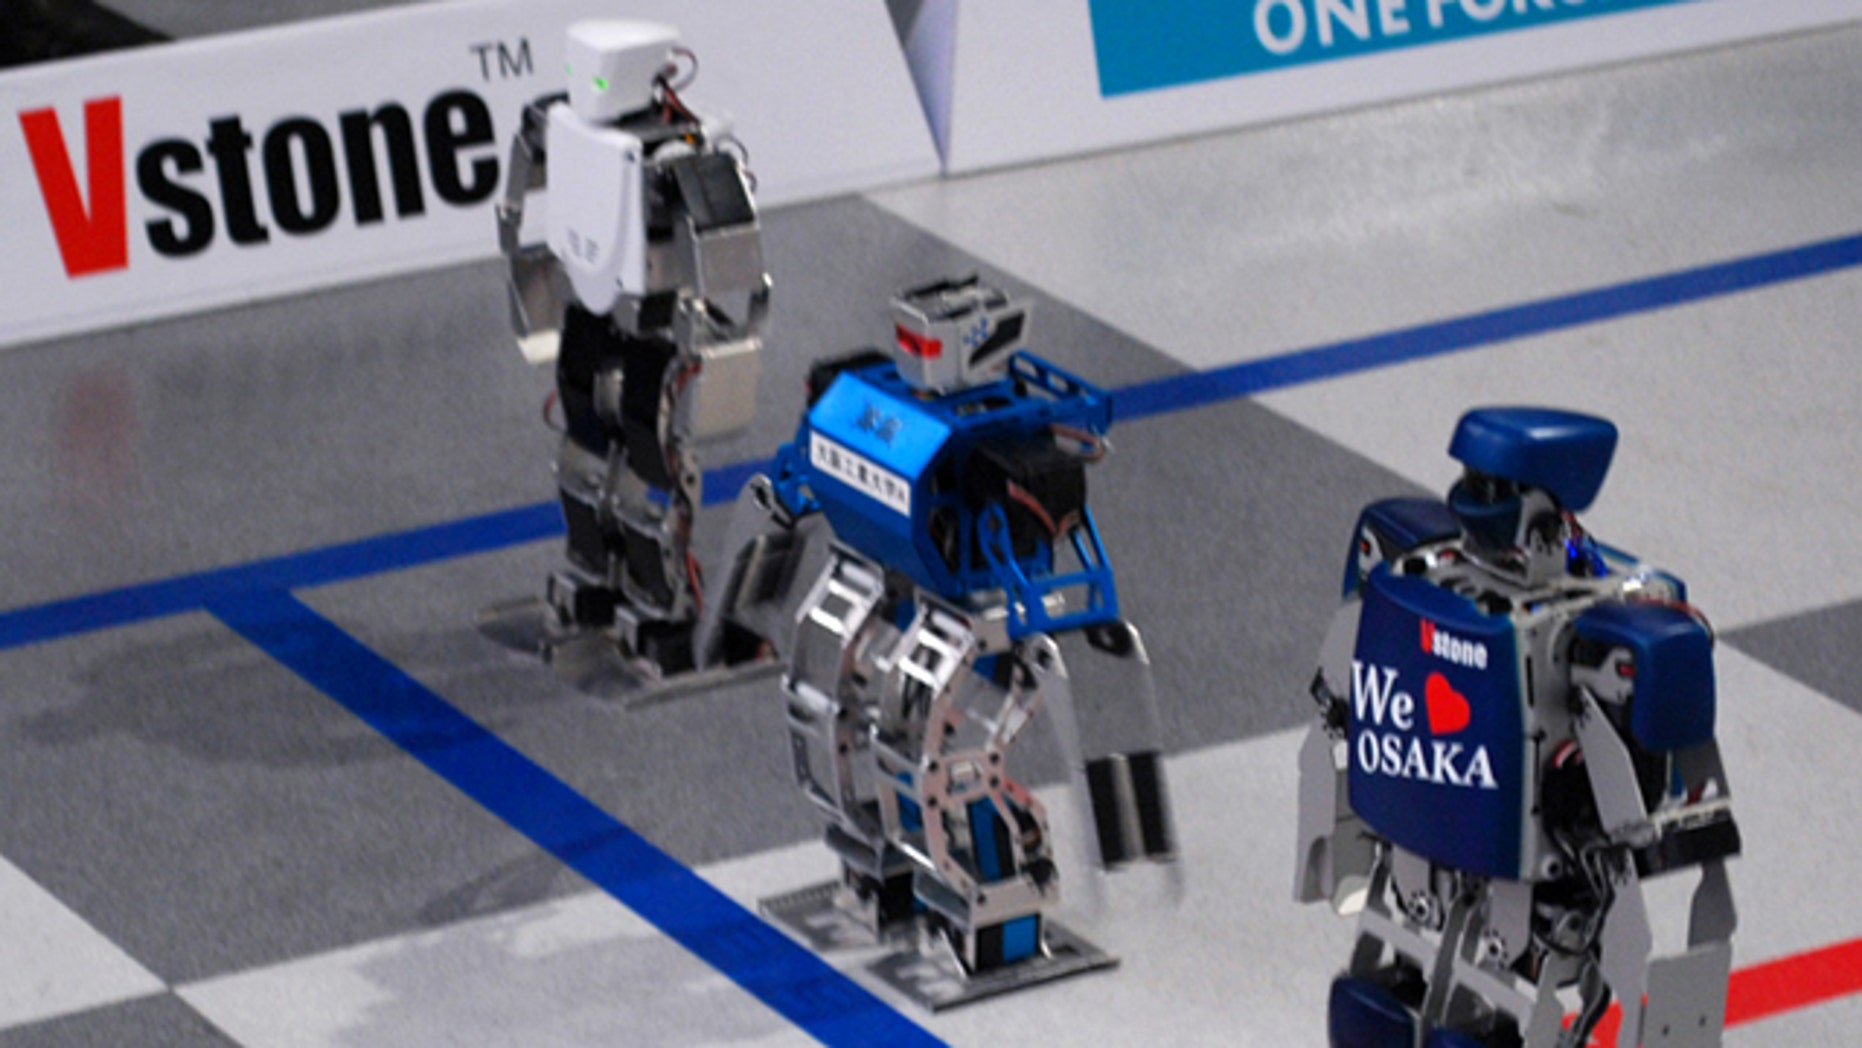 Robots line up for a race during a press conference Wednesday, Feb. 16, 2011, announcing the world's first full marathon for robots will be kicked off on Feb. 24 in Osaka, western Japan.